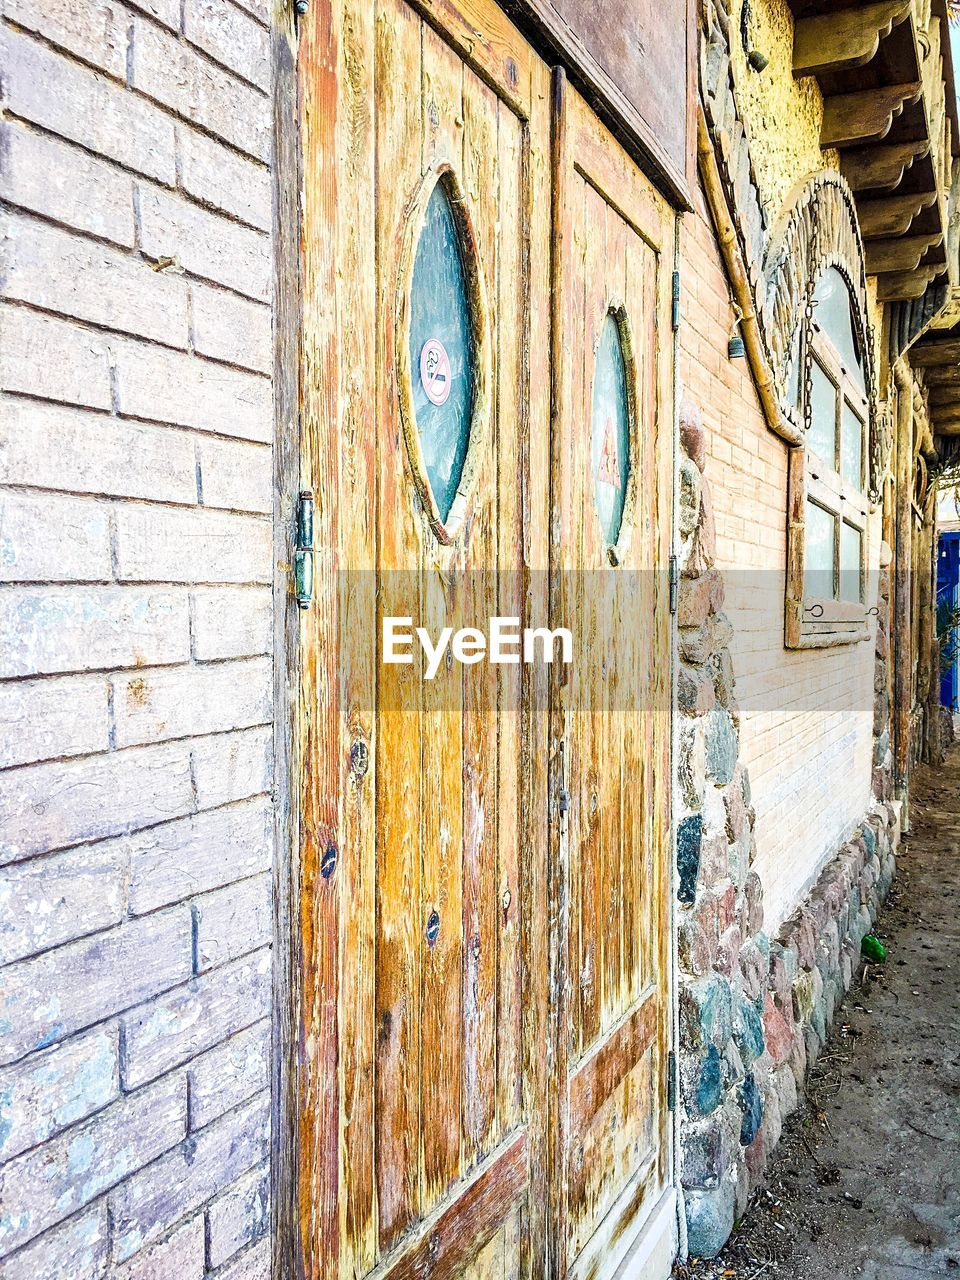 door, built structure, wood - material, architecture, outdoors, day, building exterior, no people, full frame, close-up